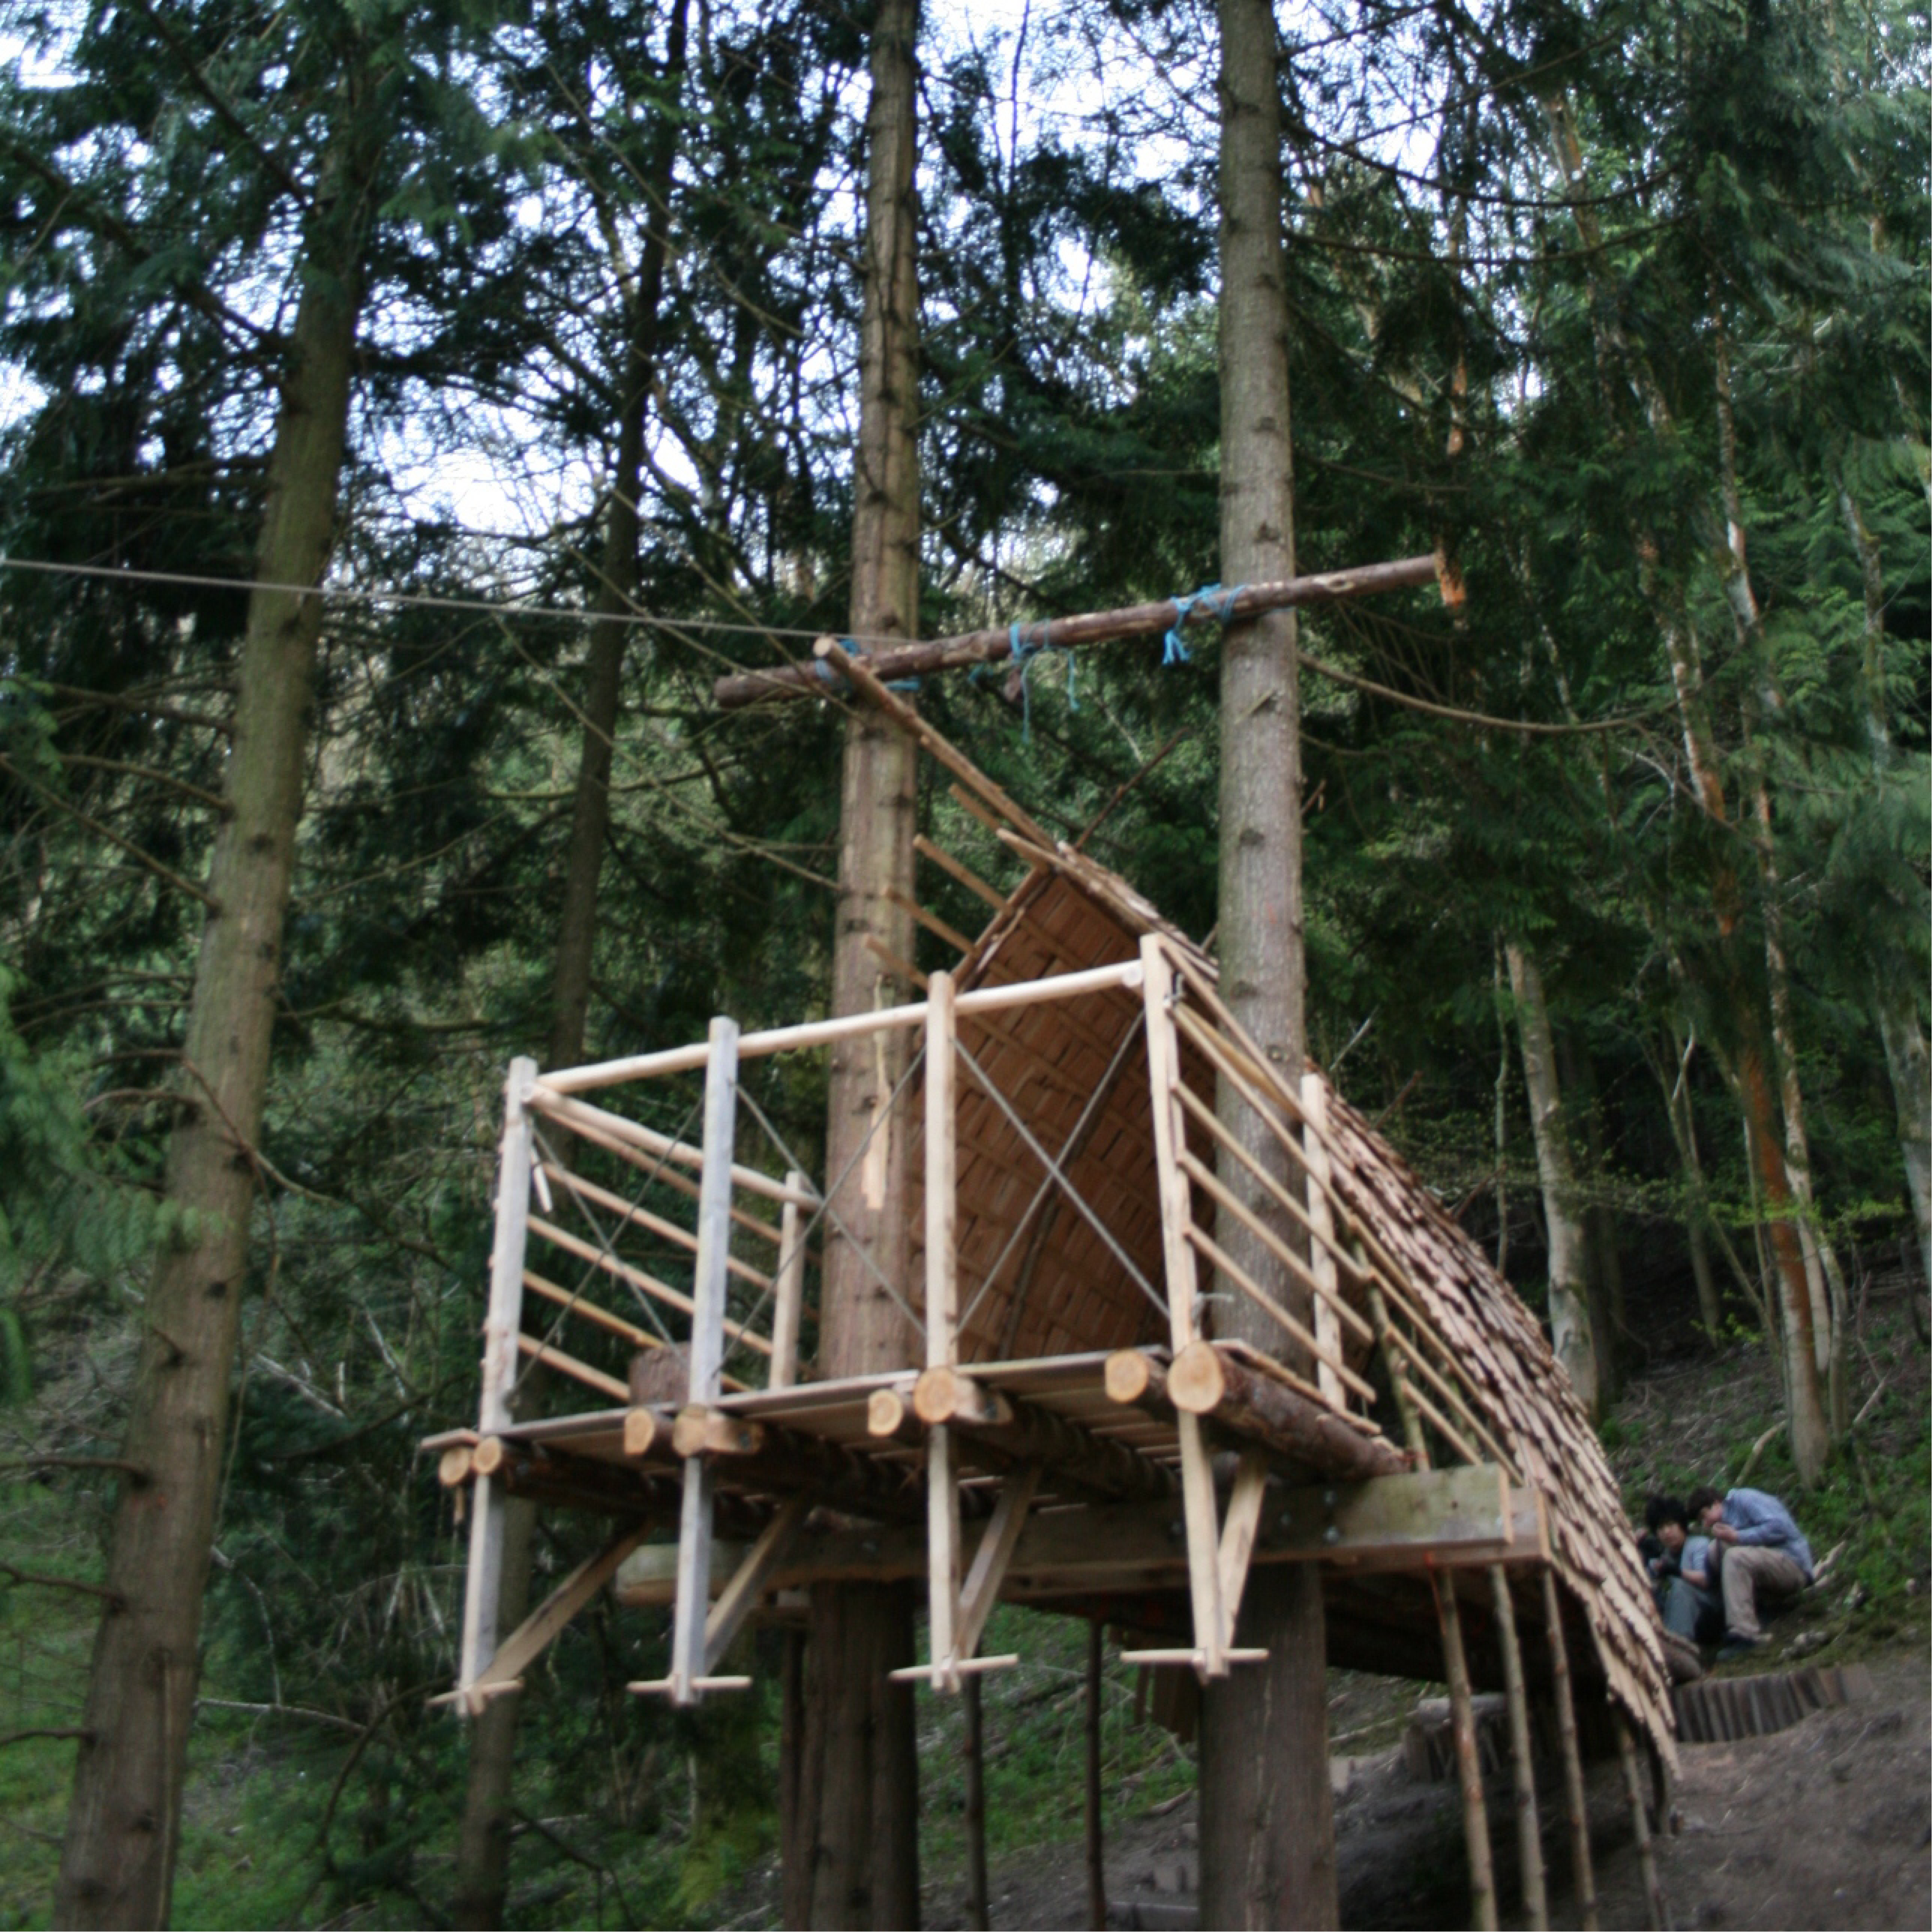 Treehouse den in Petersfield. Architecture treehouse.